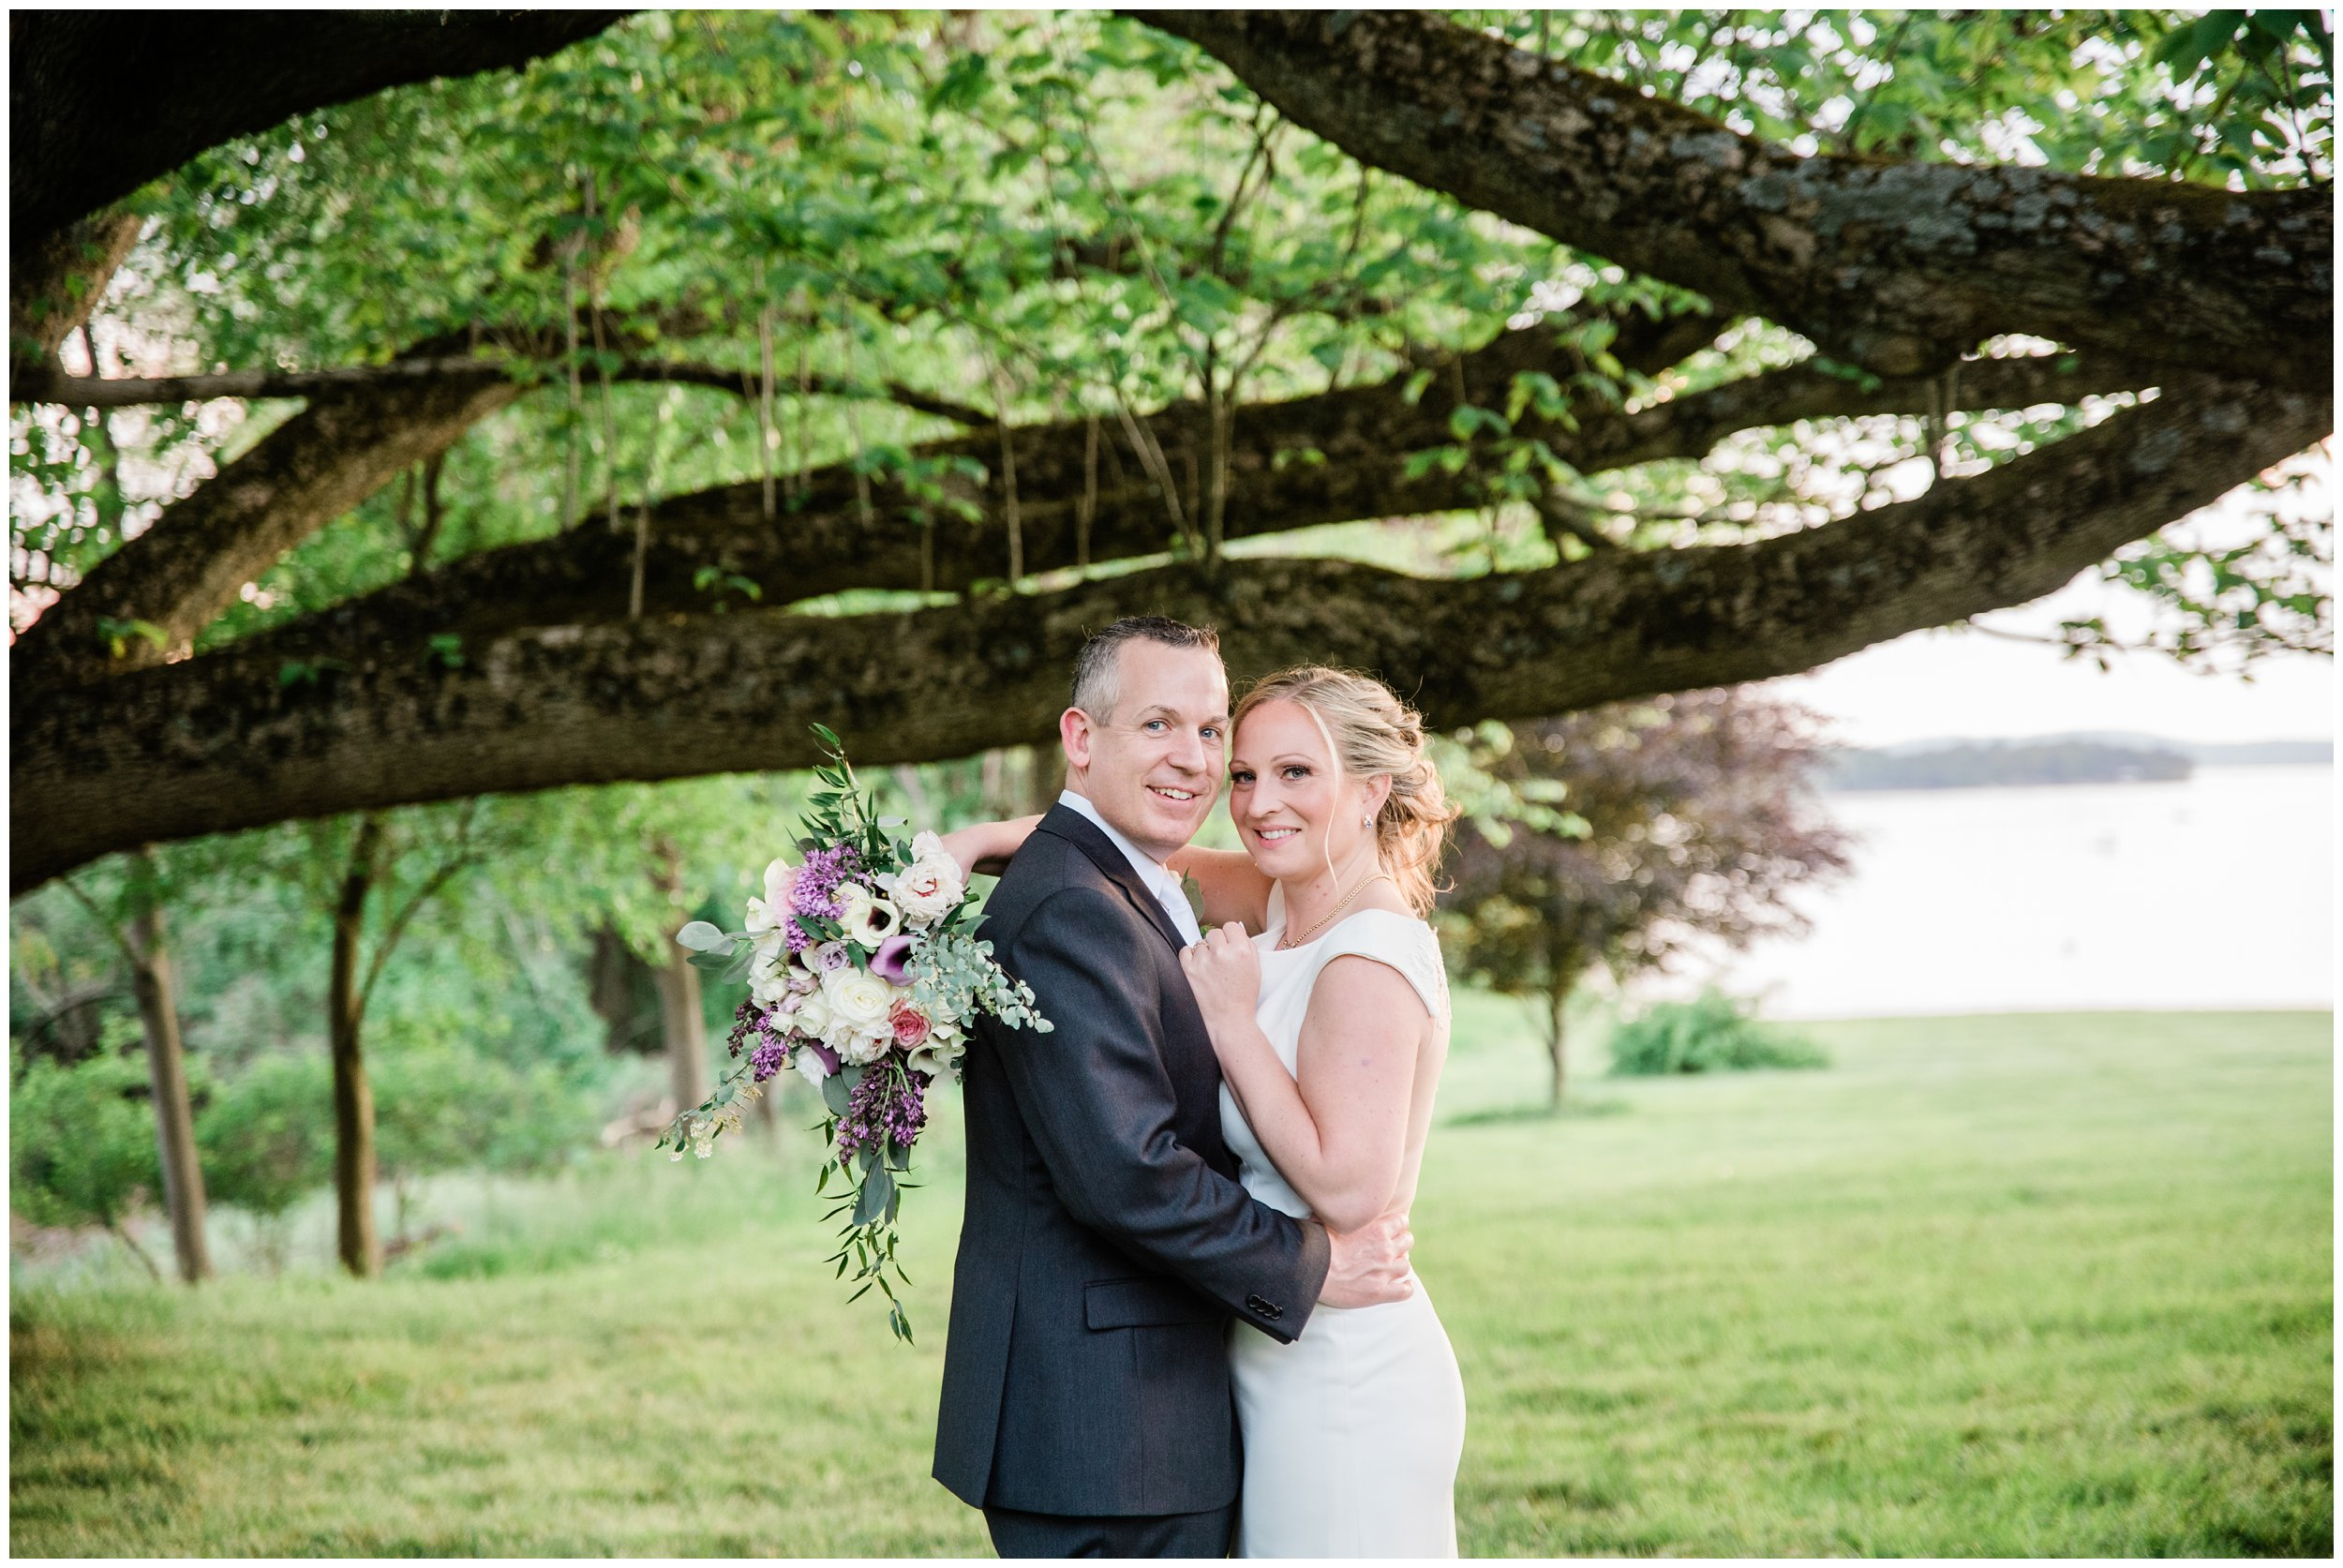 sunset wedding portrait under giant tree